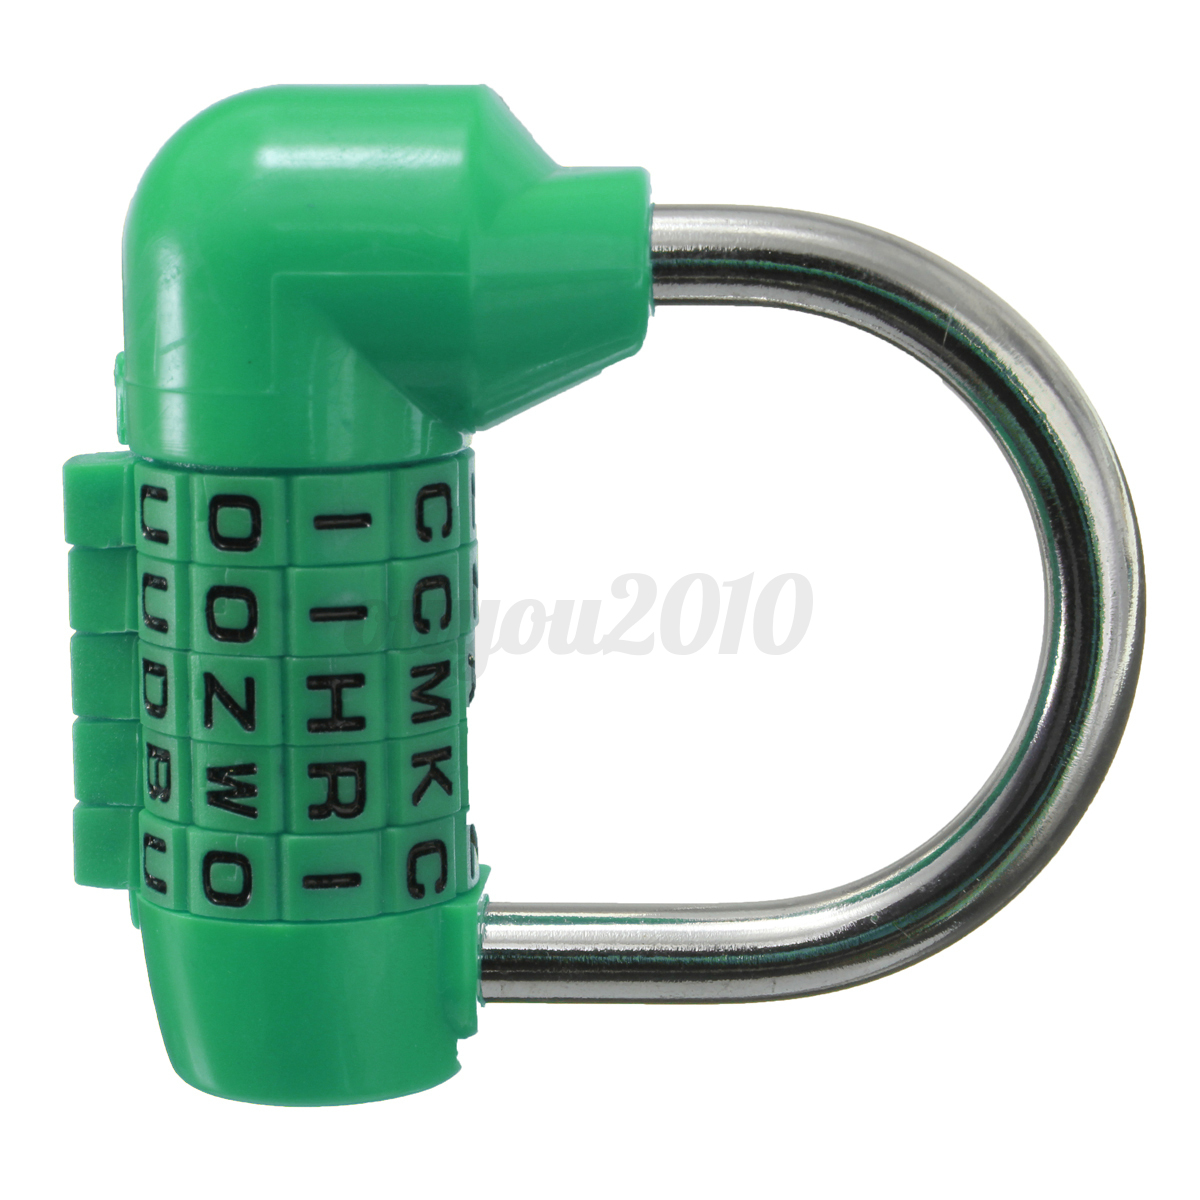 how to change combination on letter lock